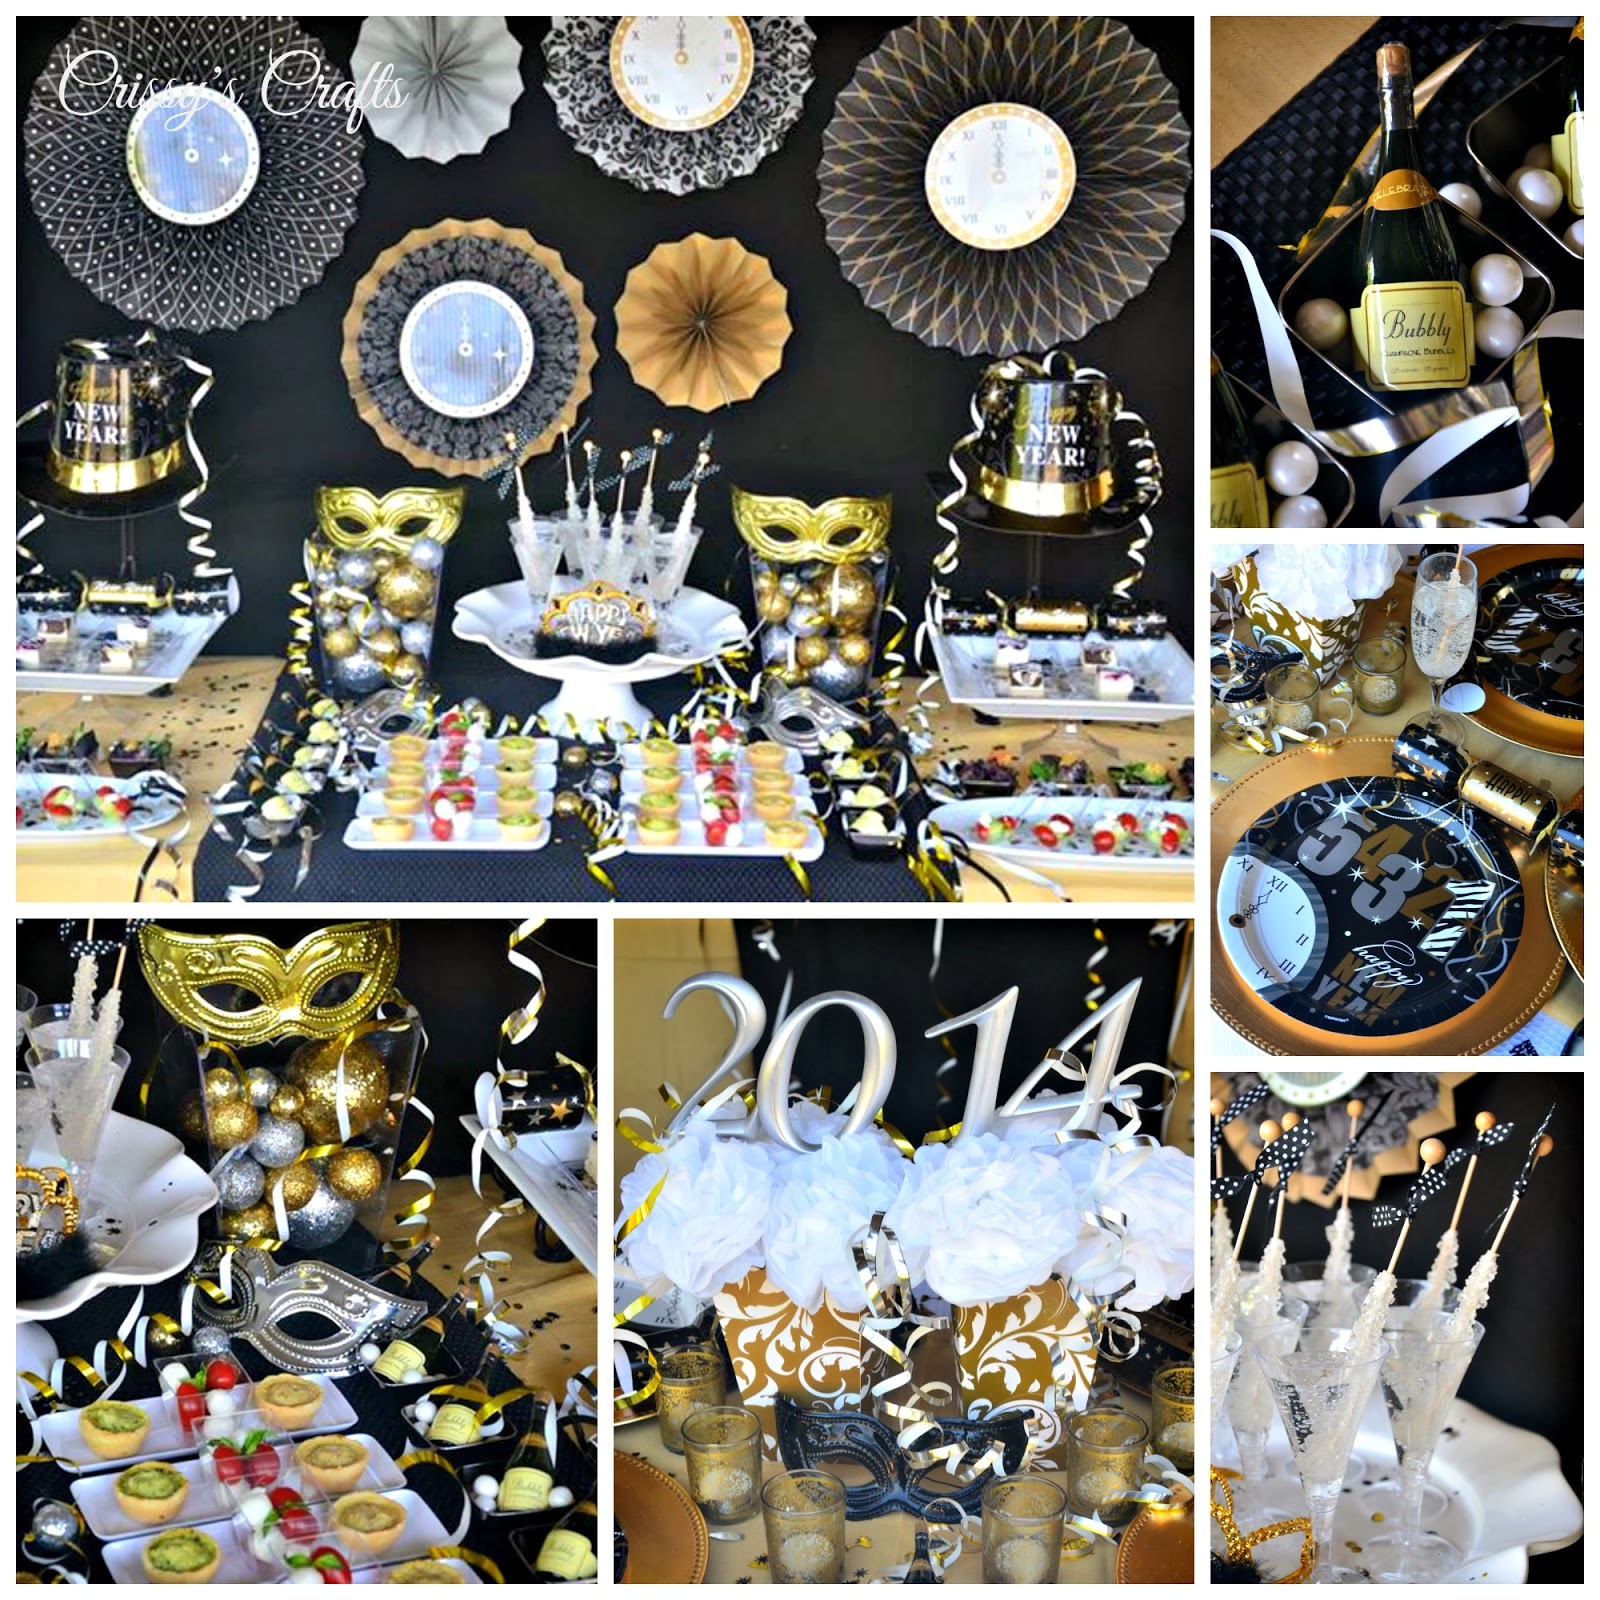 Crissy 39 s crafts new years eve party ideas - Black silver and white party decorations ...